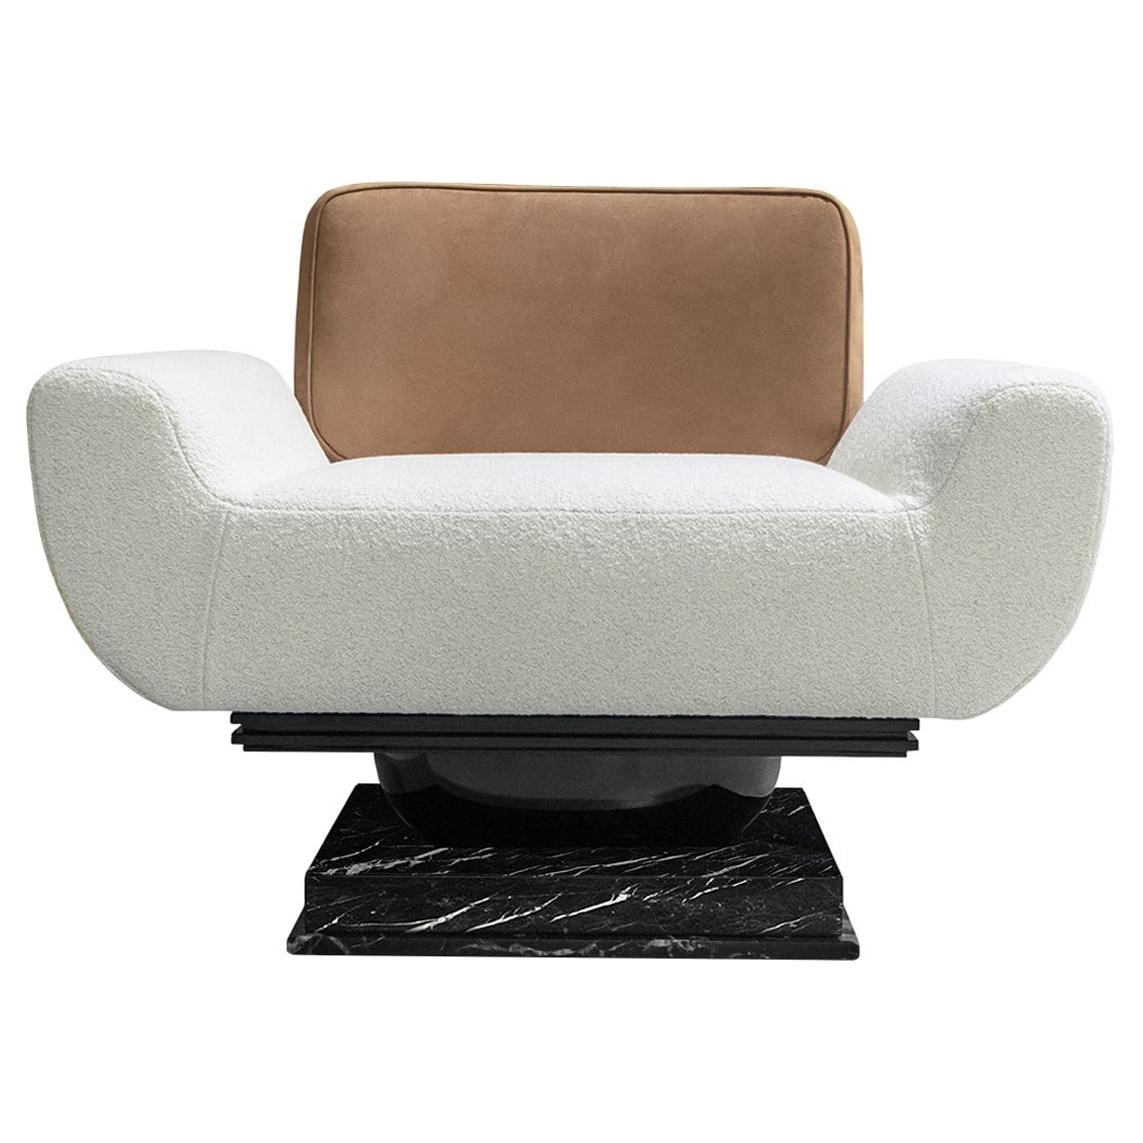 21th Century Modern Armchair Bouclé, Leather Upholstered & Nero Marquina Marble